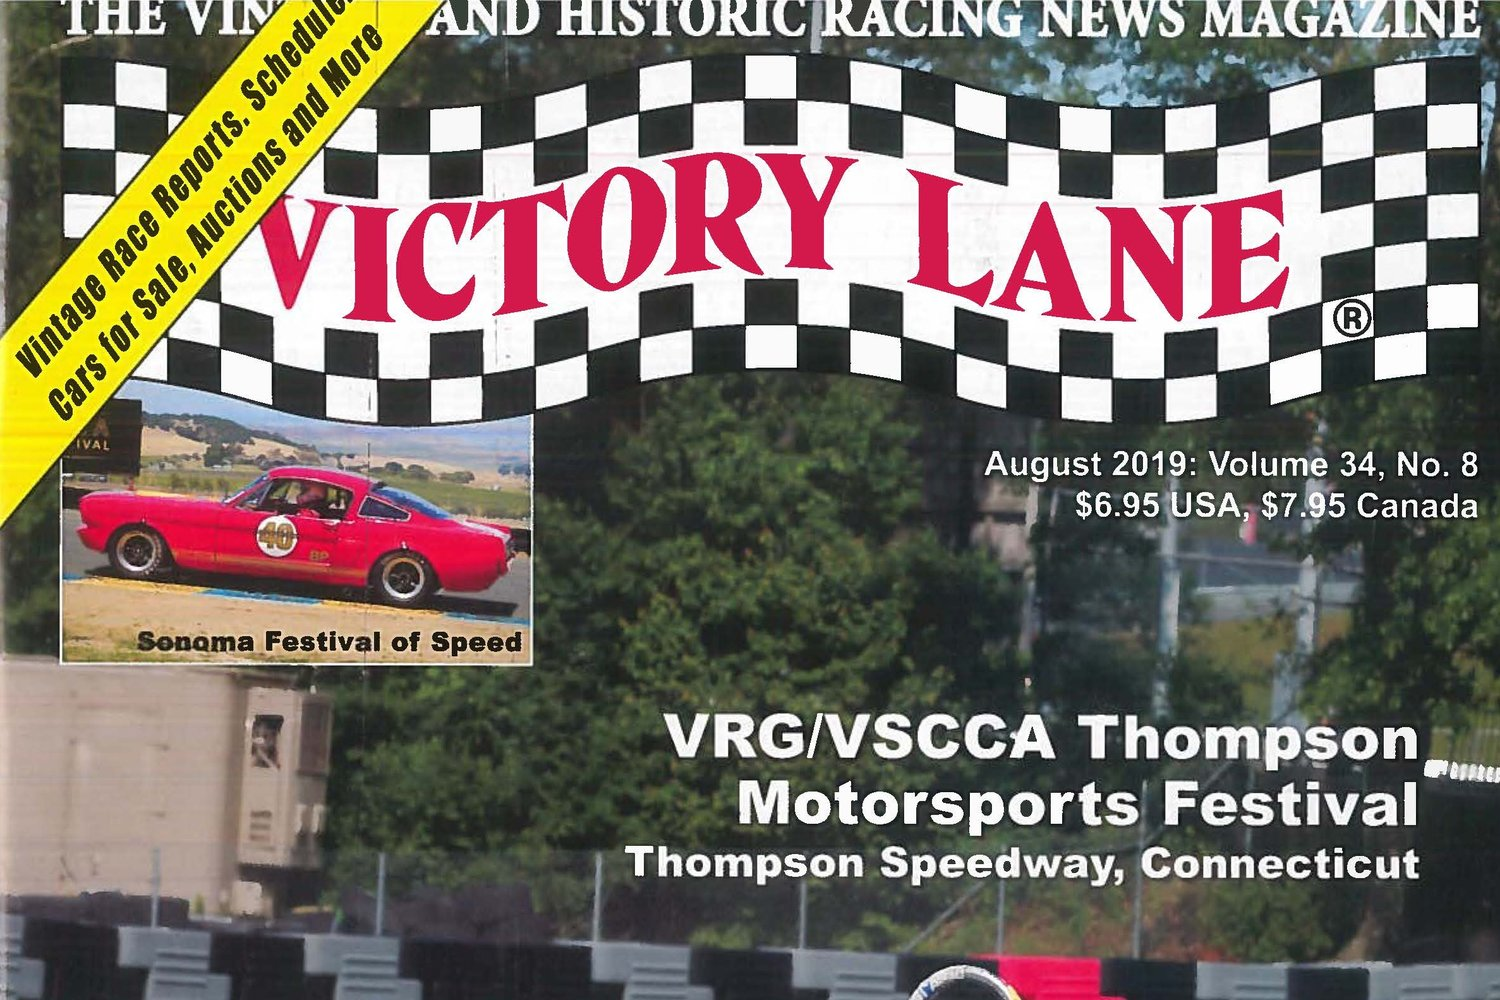 VRS+In+The+News+Victory+Lane+August+2019+%281%29.jpg